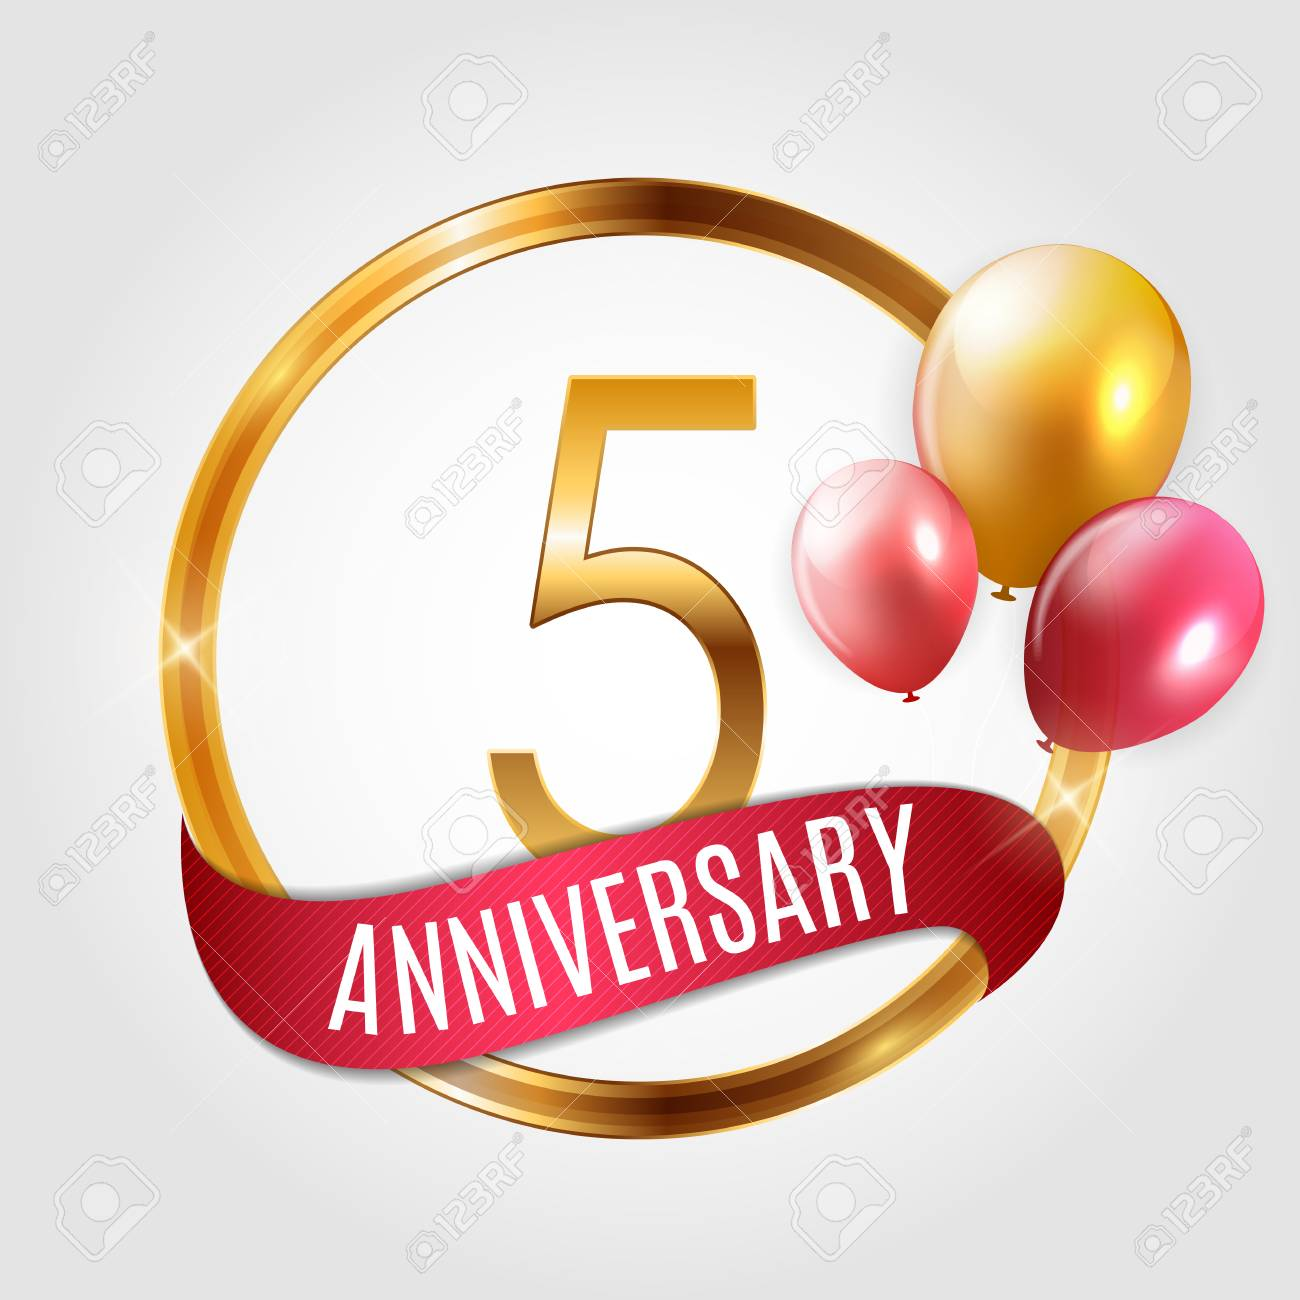 Image result for 5 years anniversary